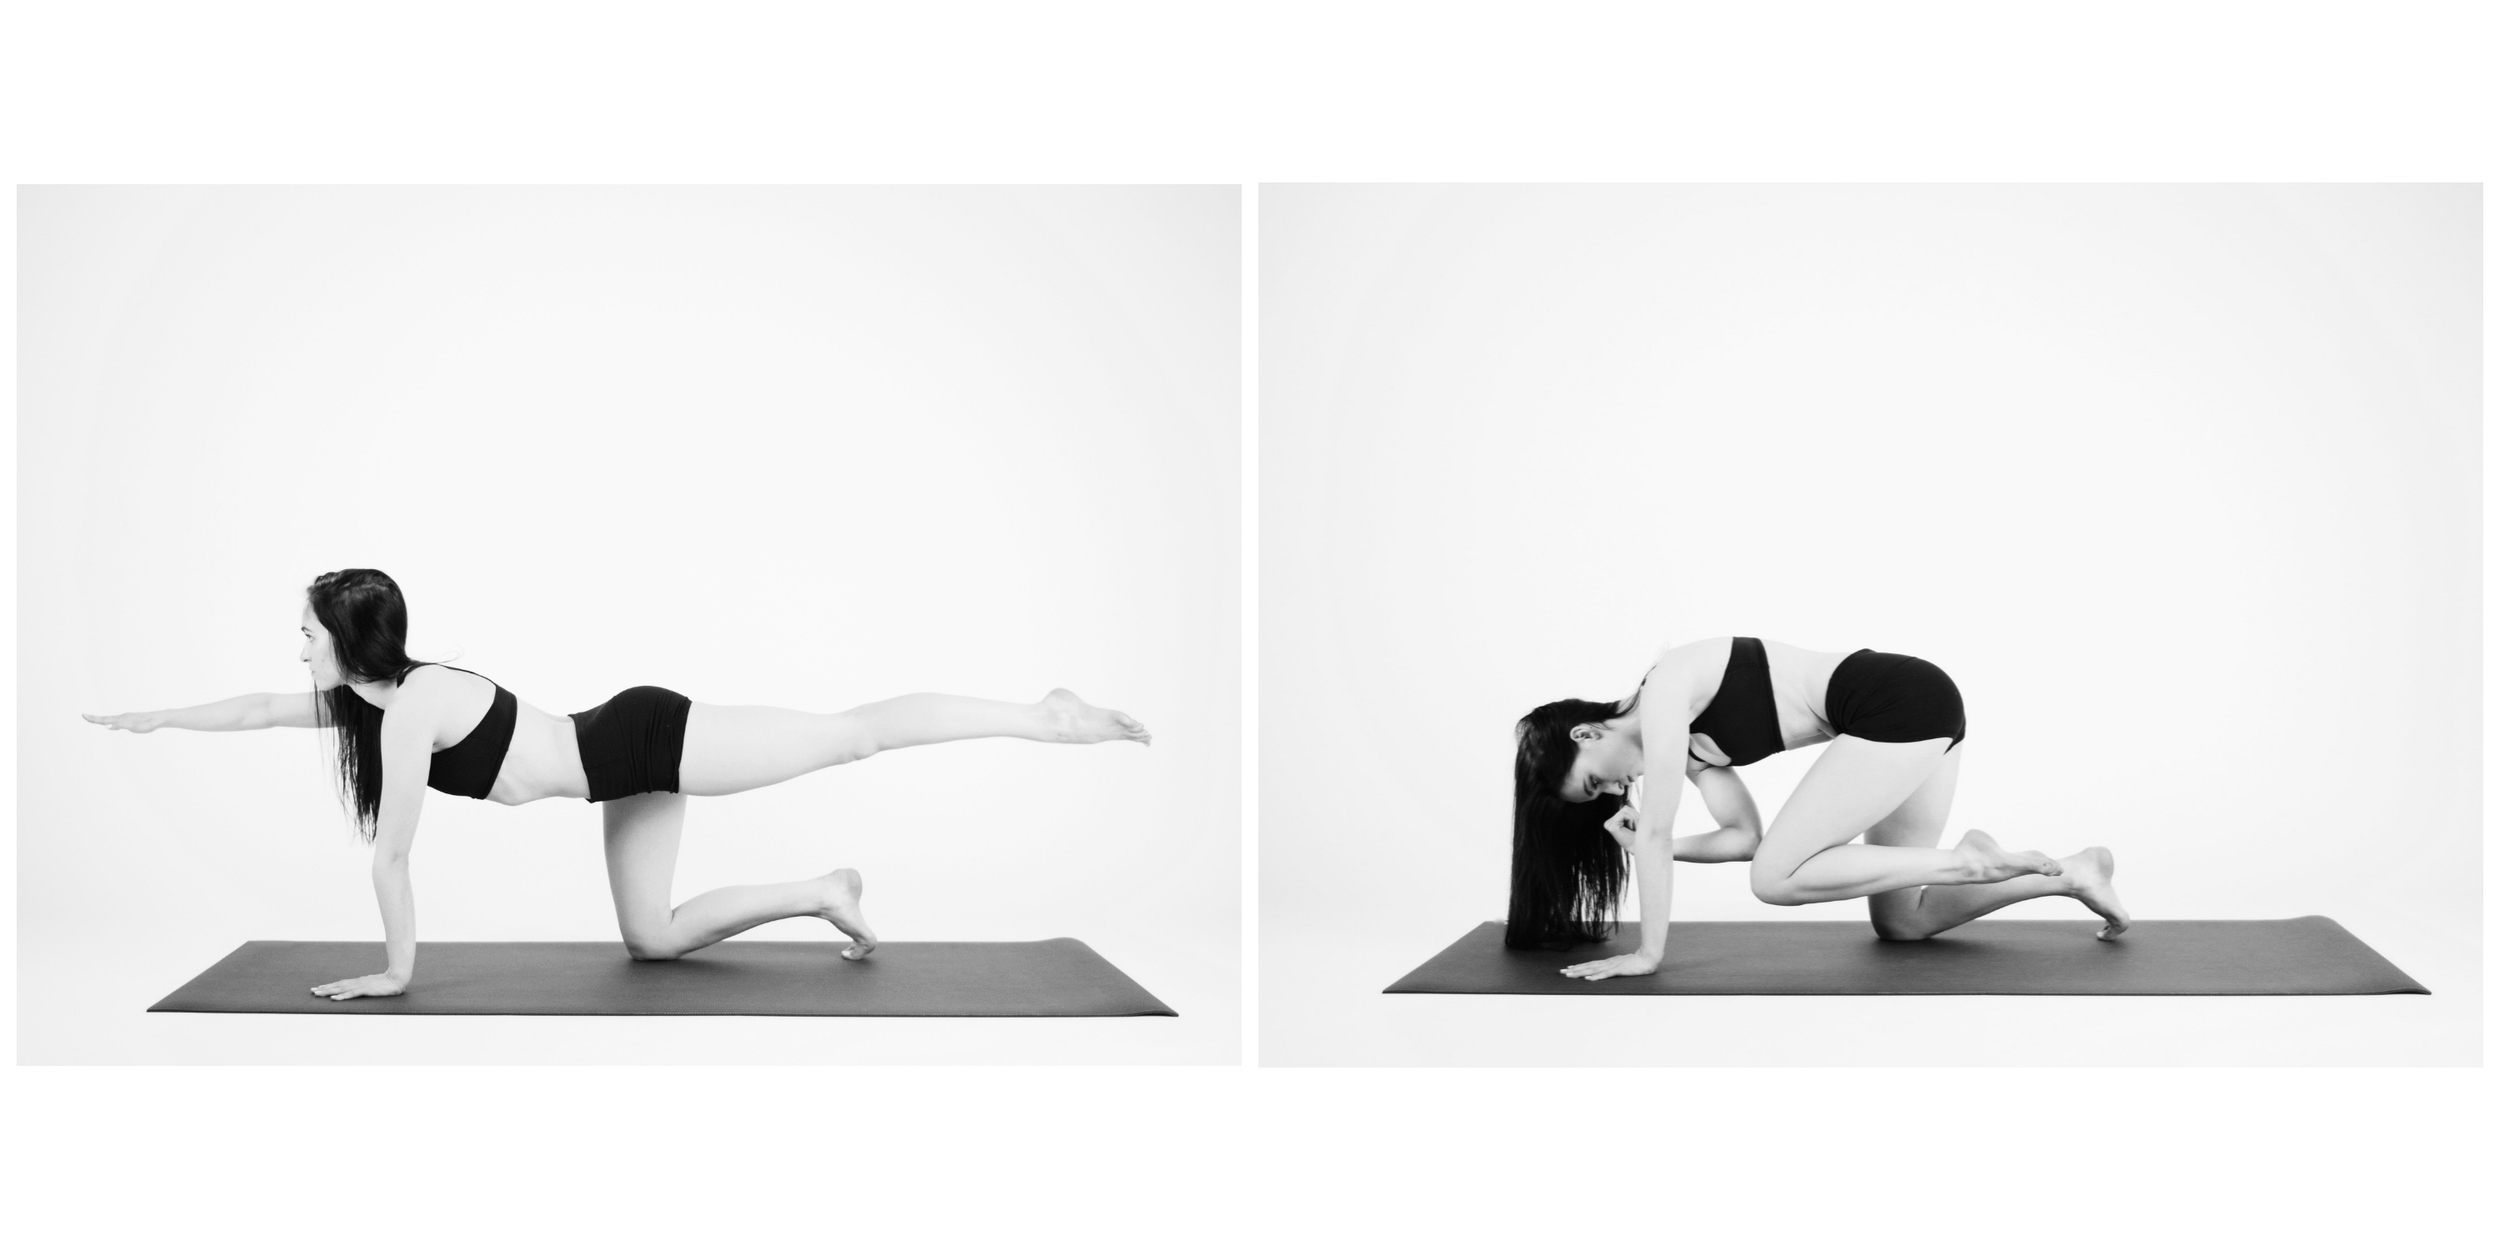 BALANCING TABLE  Back on your hands and knees, inhale and stretch your right arm in front of you and extend your left leg back behind you. Try tucking your back toes under for more stability. Exhale and draw your elbow and knee towards each other under your body. Repeat 3x on each side.